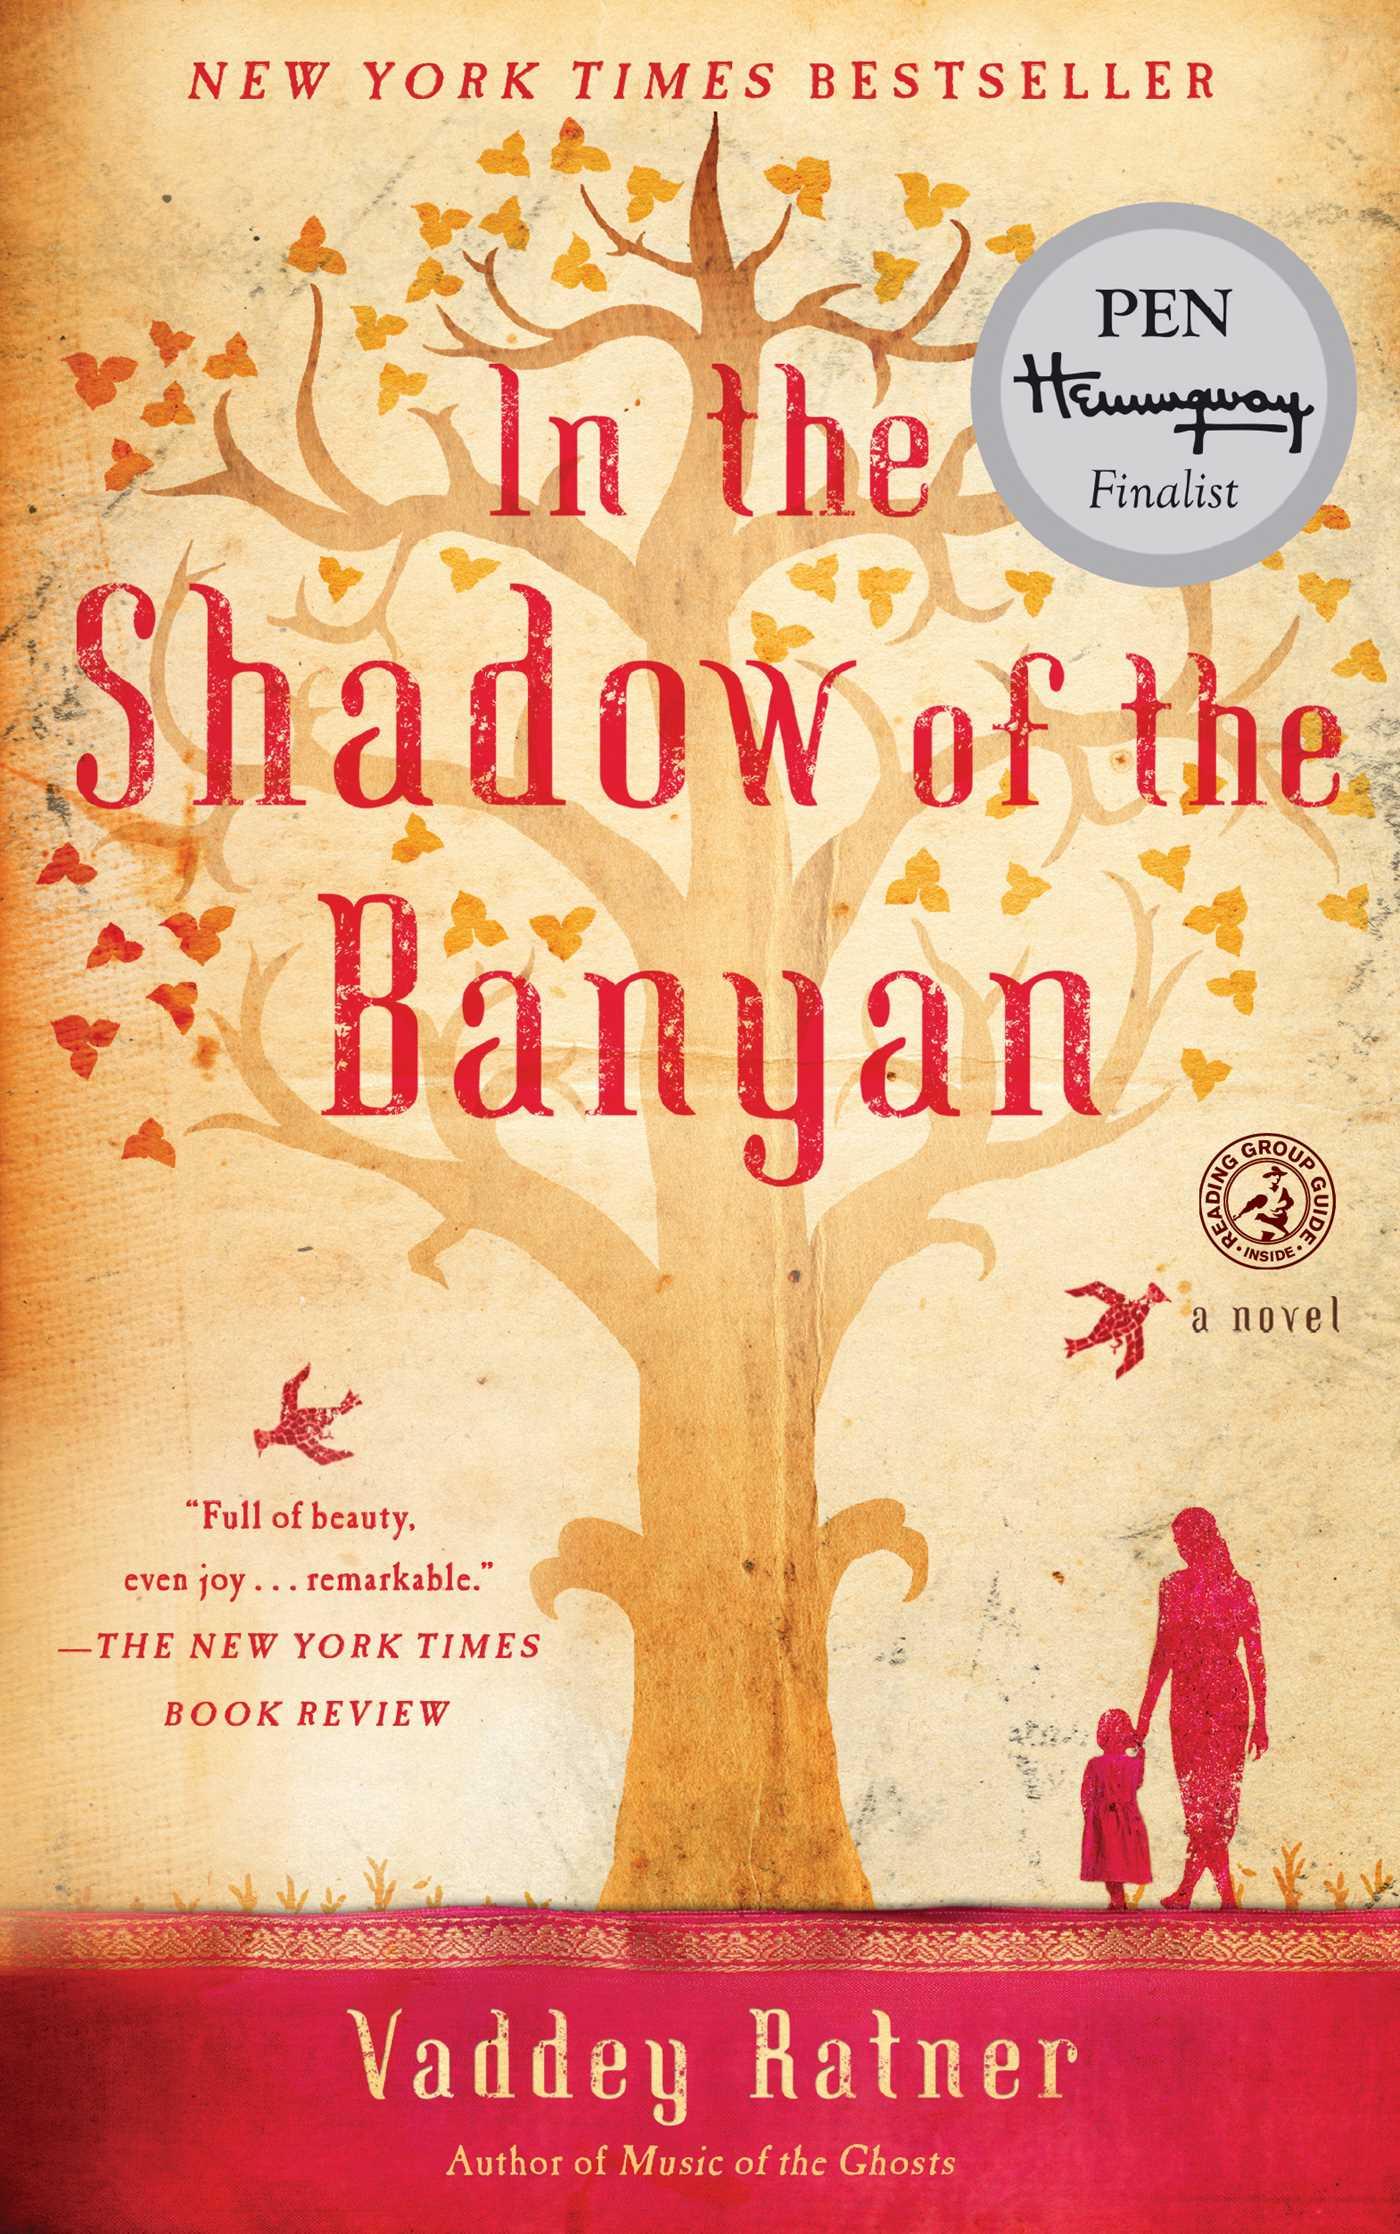 In the shadow of the banyan 9781451657715 hr